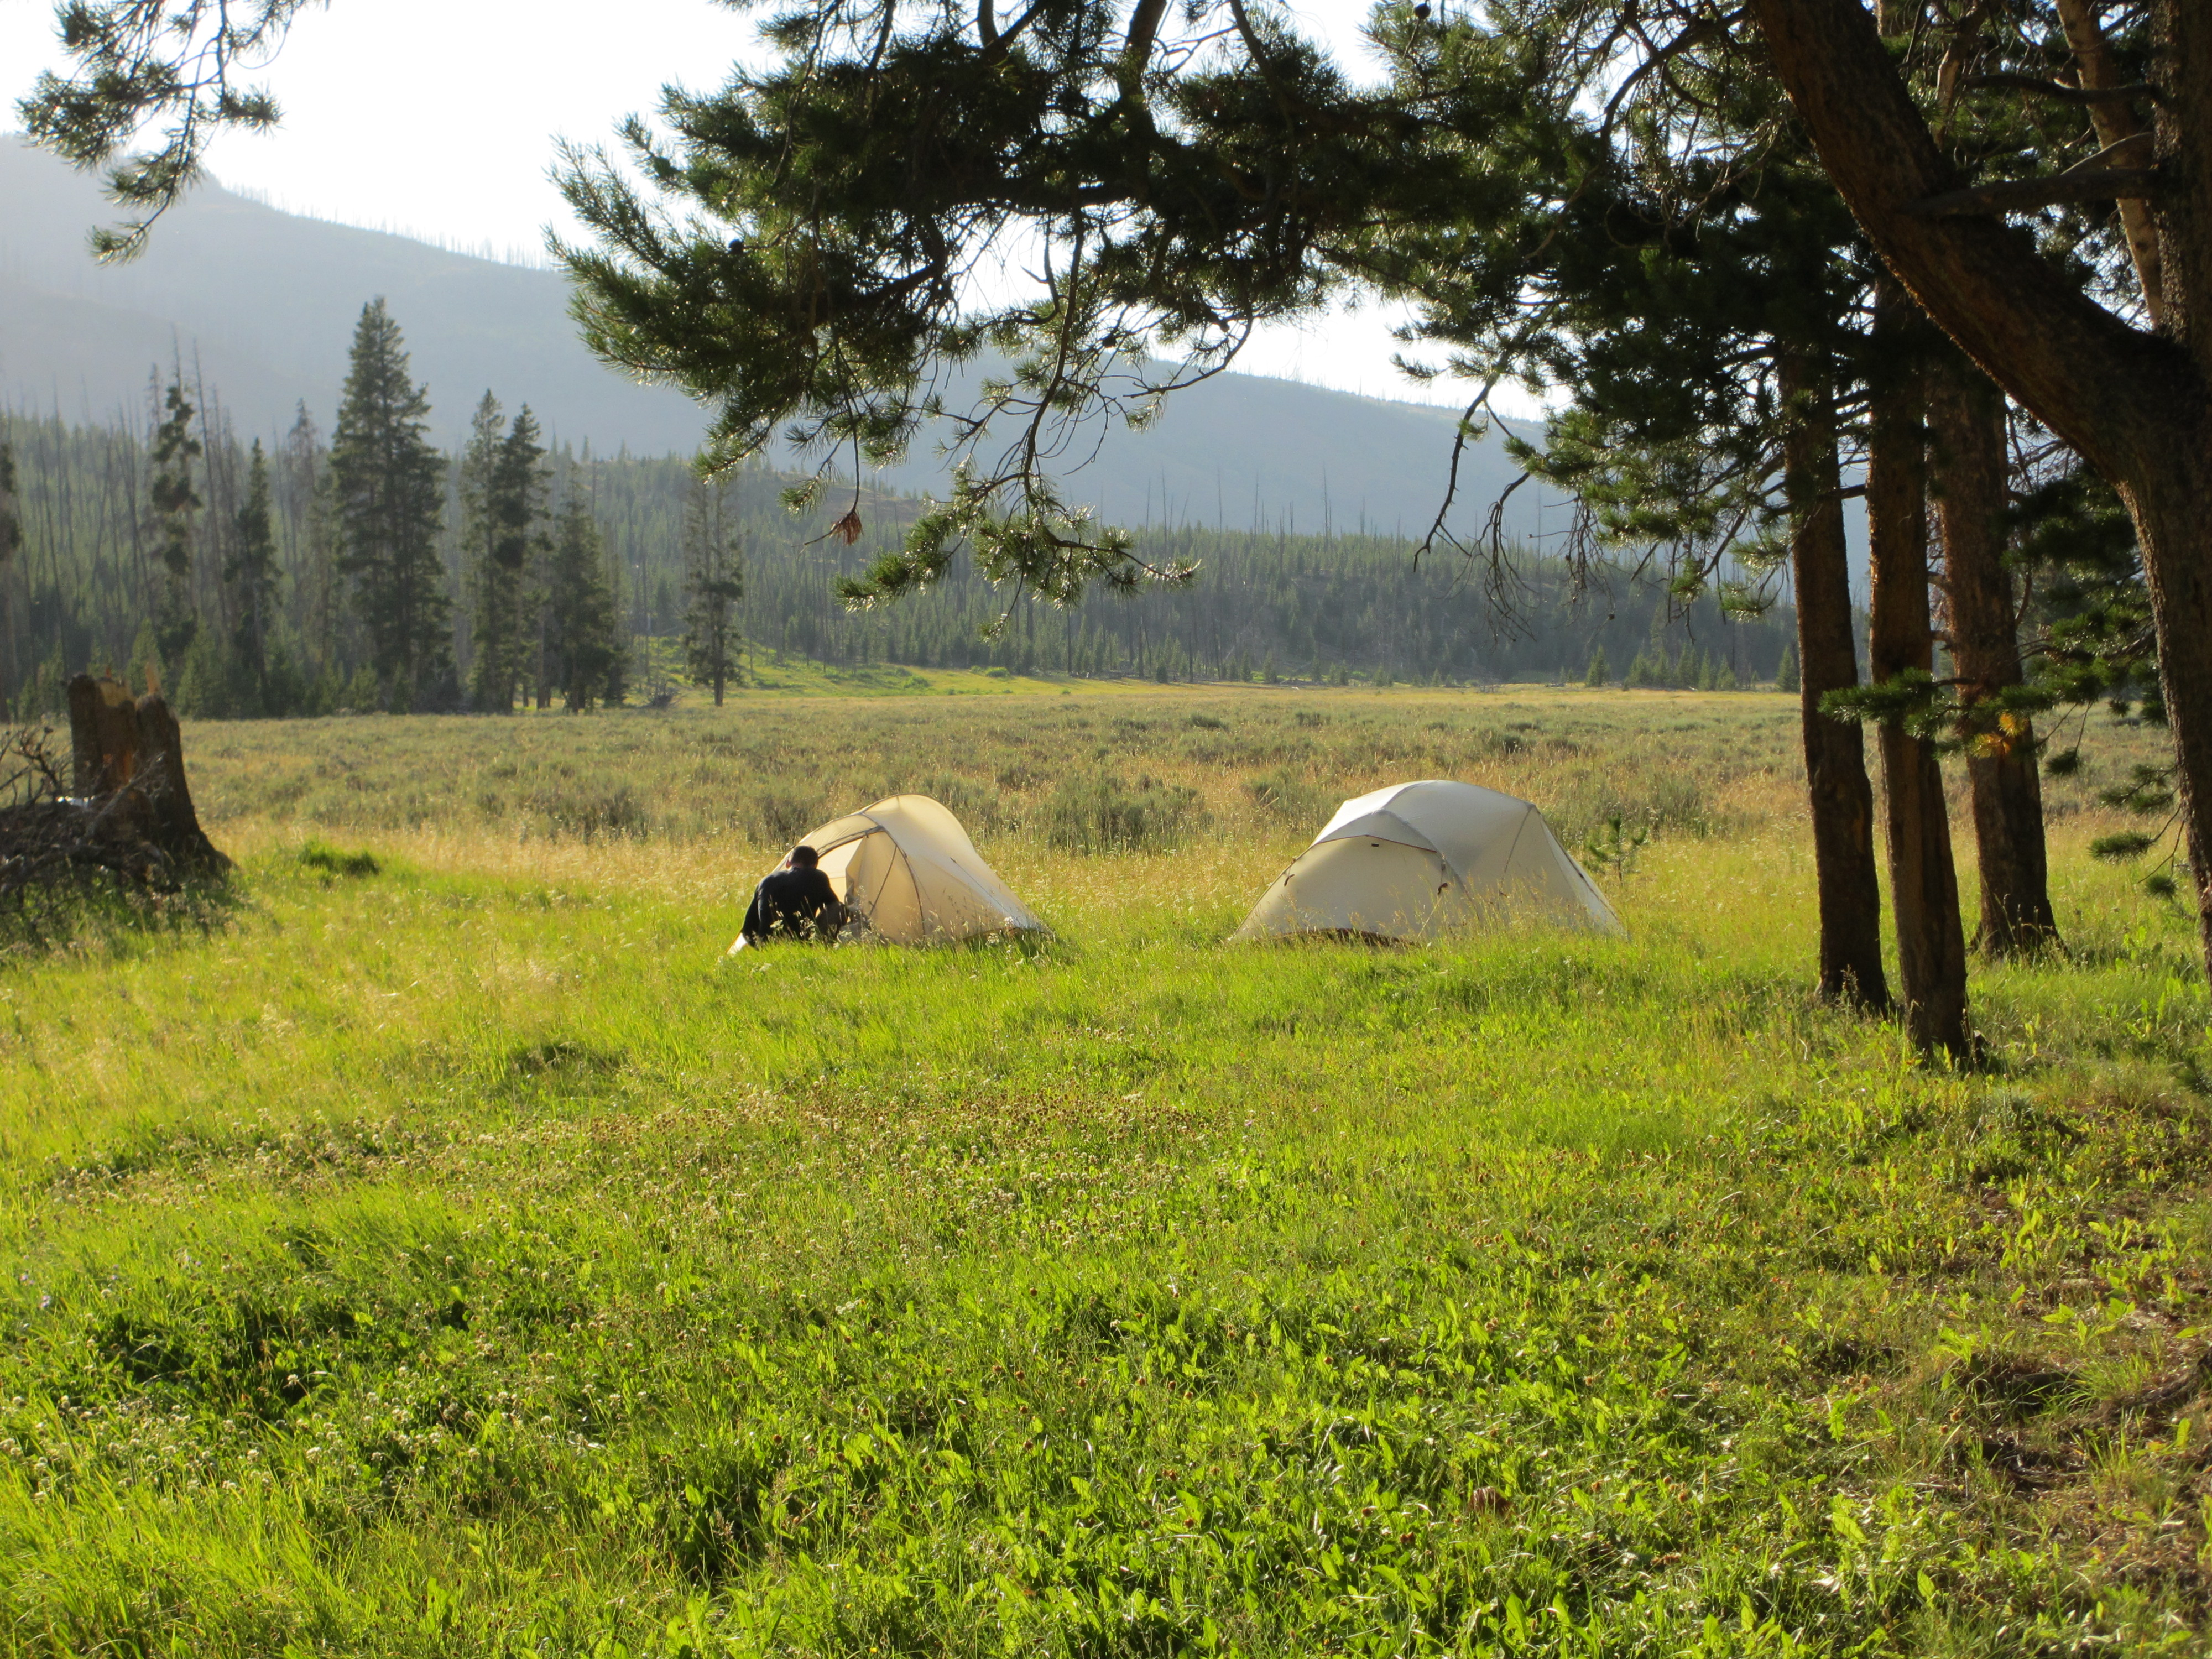 Backpacking Yellowstone, Campsite night 2 in upper Lamar River Valley, Big Agnes Tents